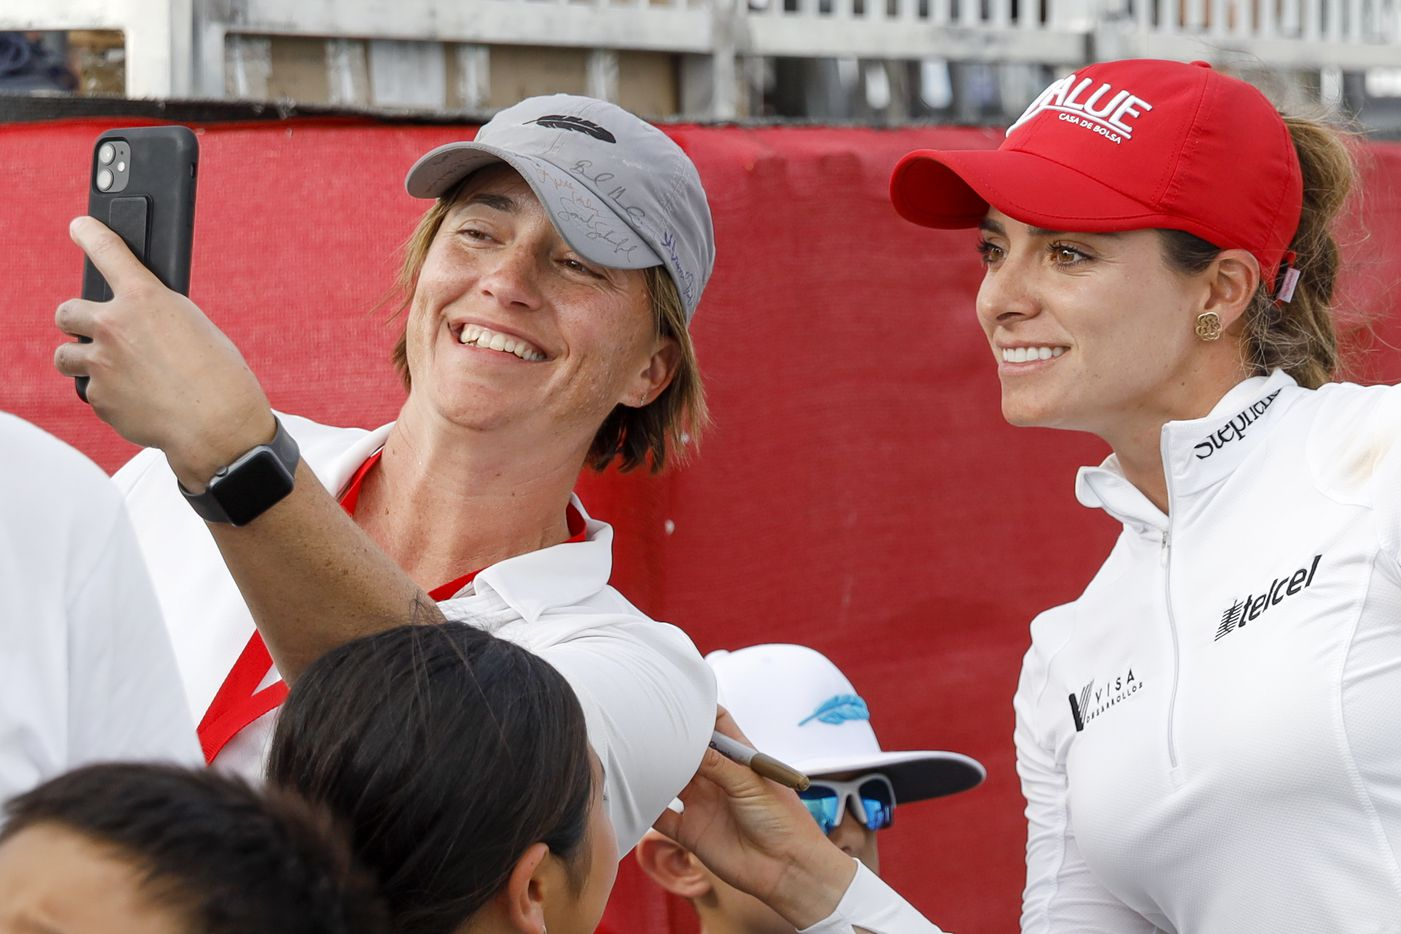 Professional golfer Gaby Lopez poses for a selfie with a fan after completing the final round of the LPGA VOA Classic on Sunday, July 4, 2021, in The Colony, Texas. Lopez placed third in the tournament at 14 under par. (Elias Valverde II/The Dallas Morning News)